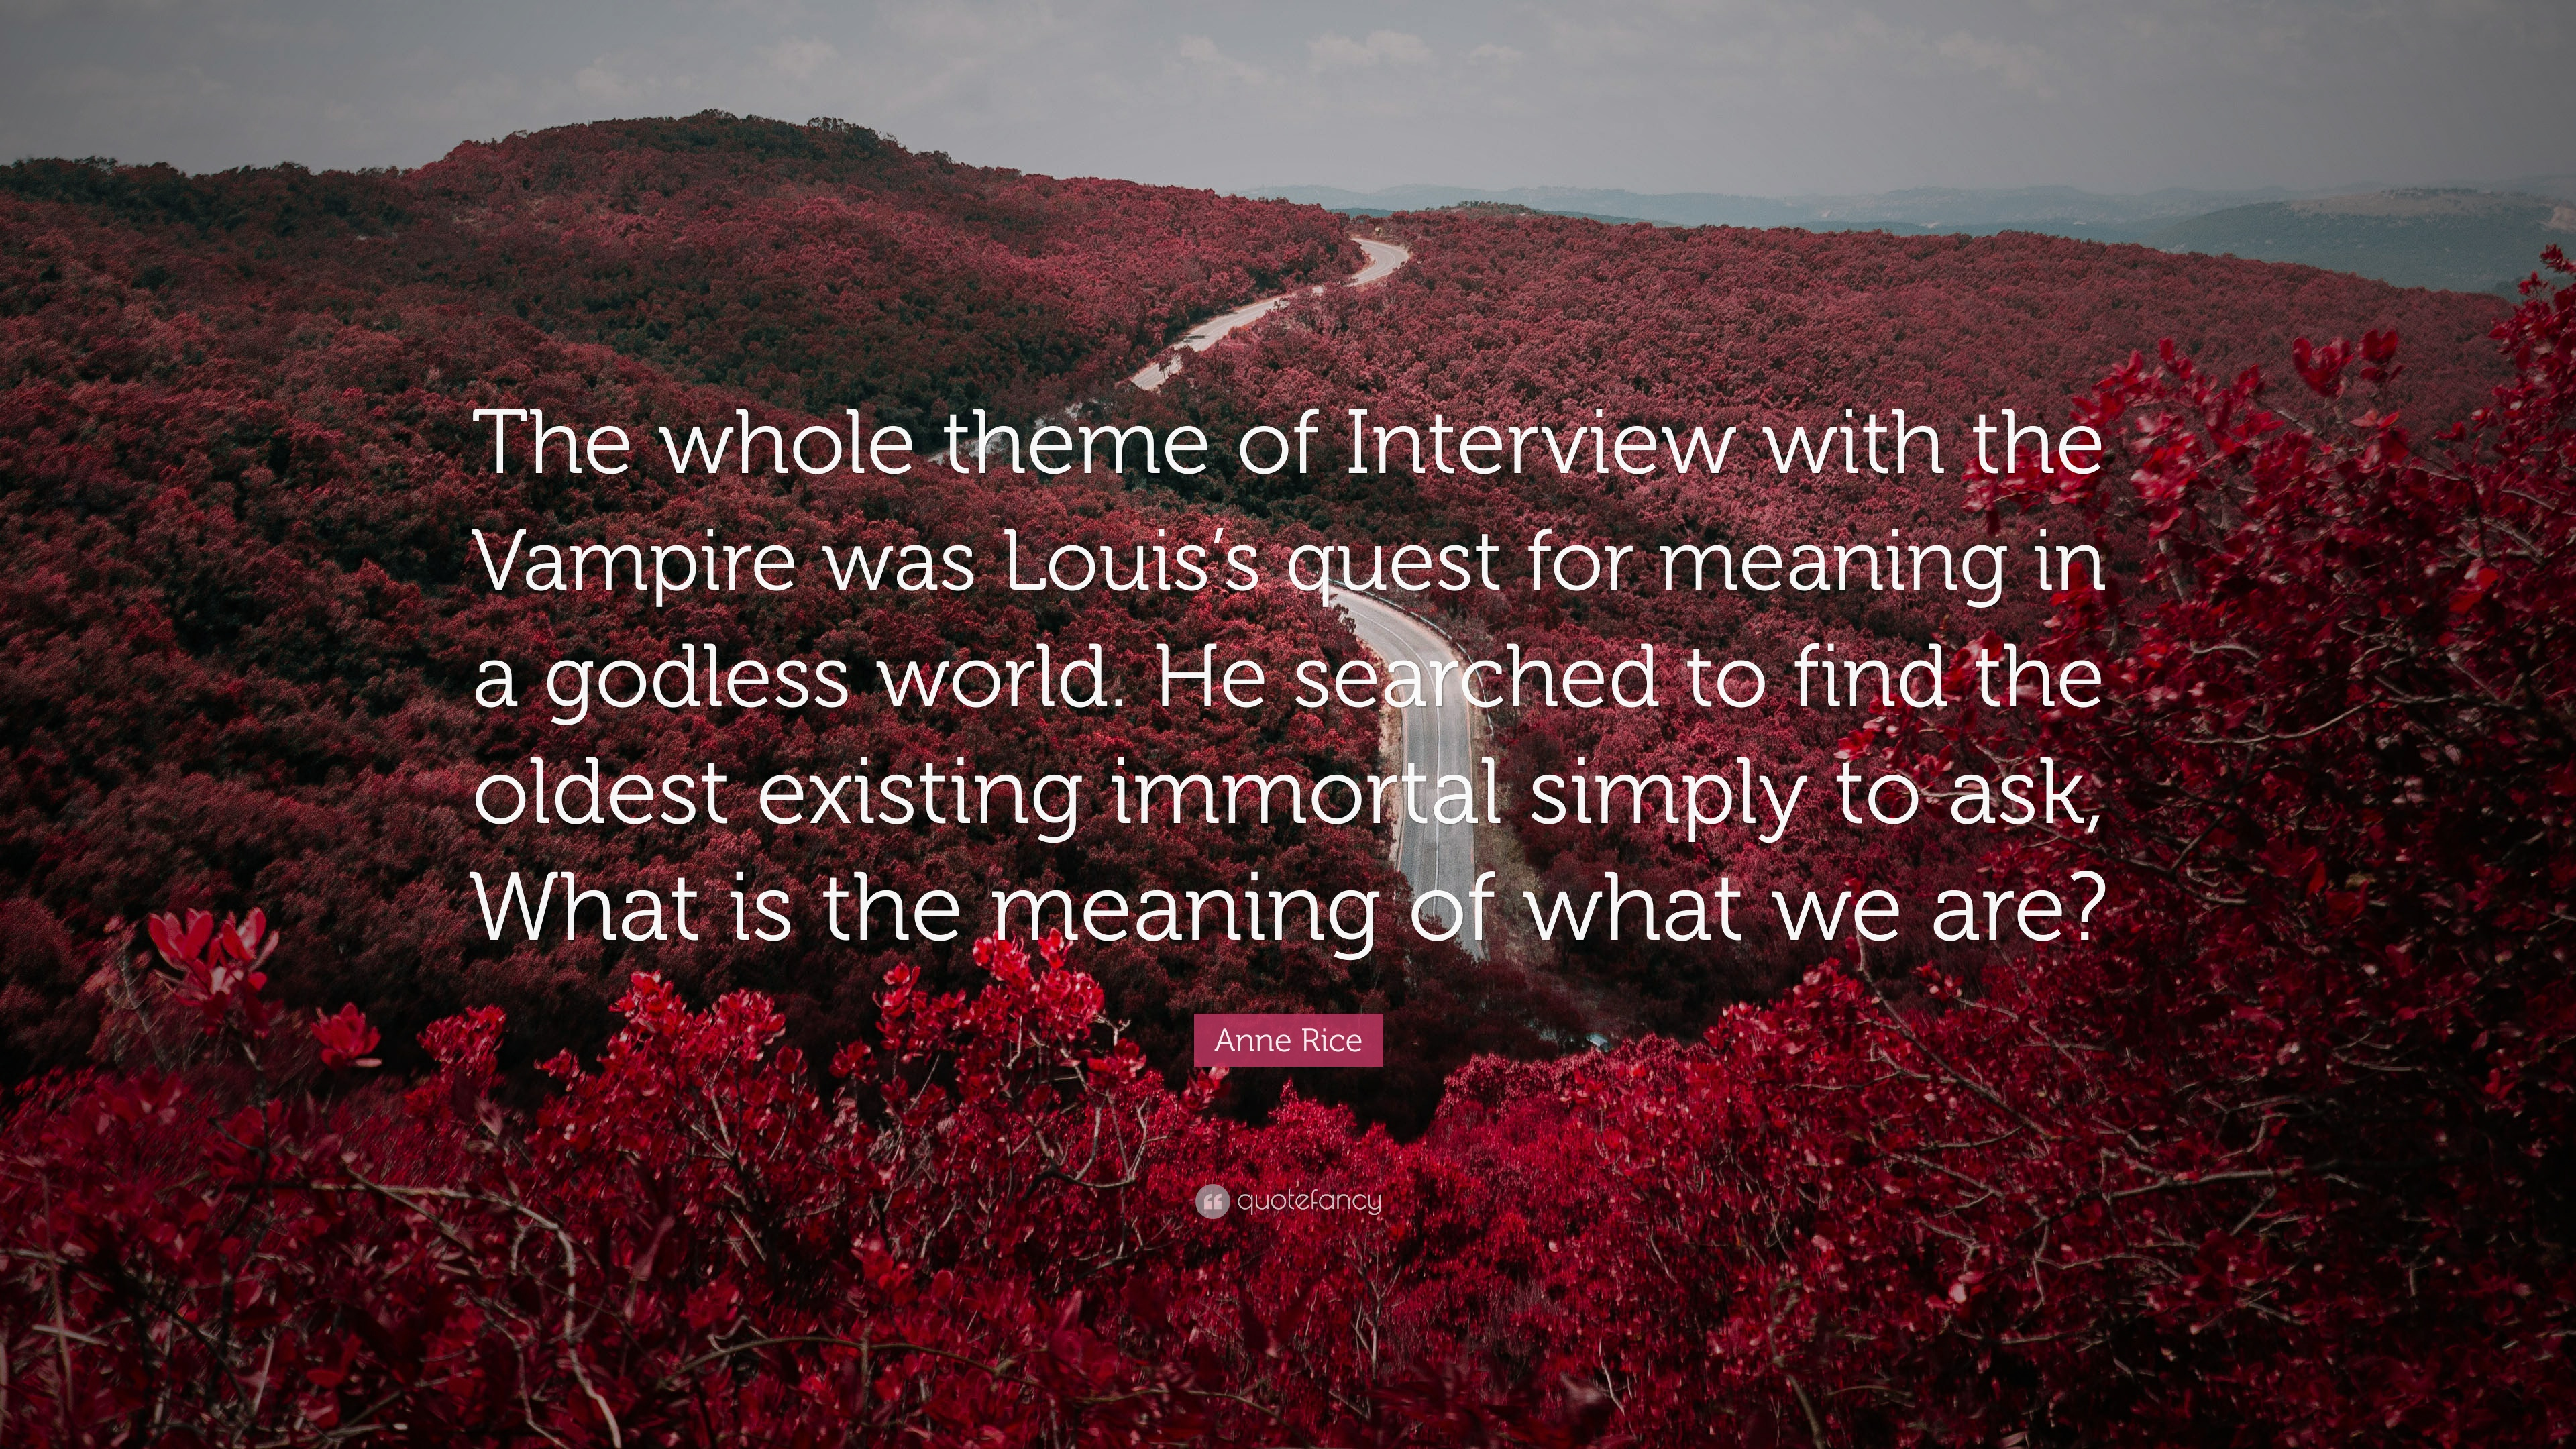 Anne Rice Quote The Whole Theme Of Interview With Vampire Was Louiss Quest